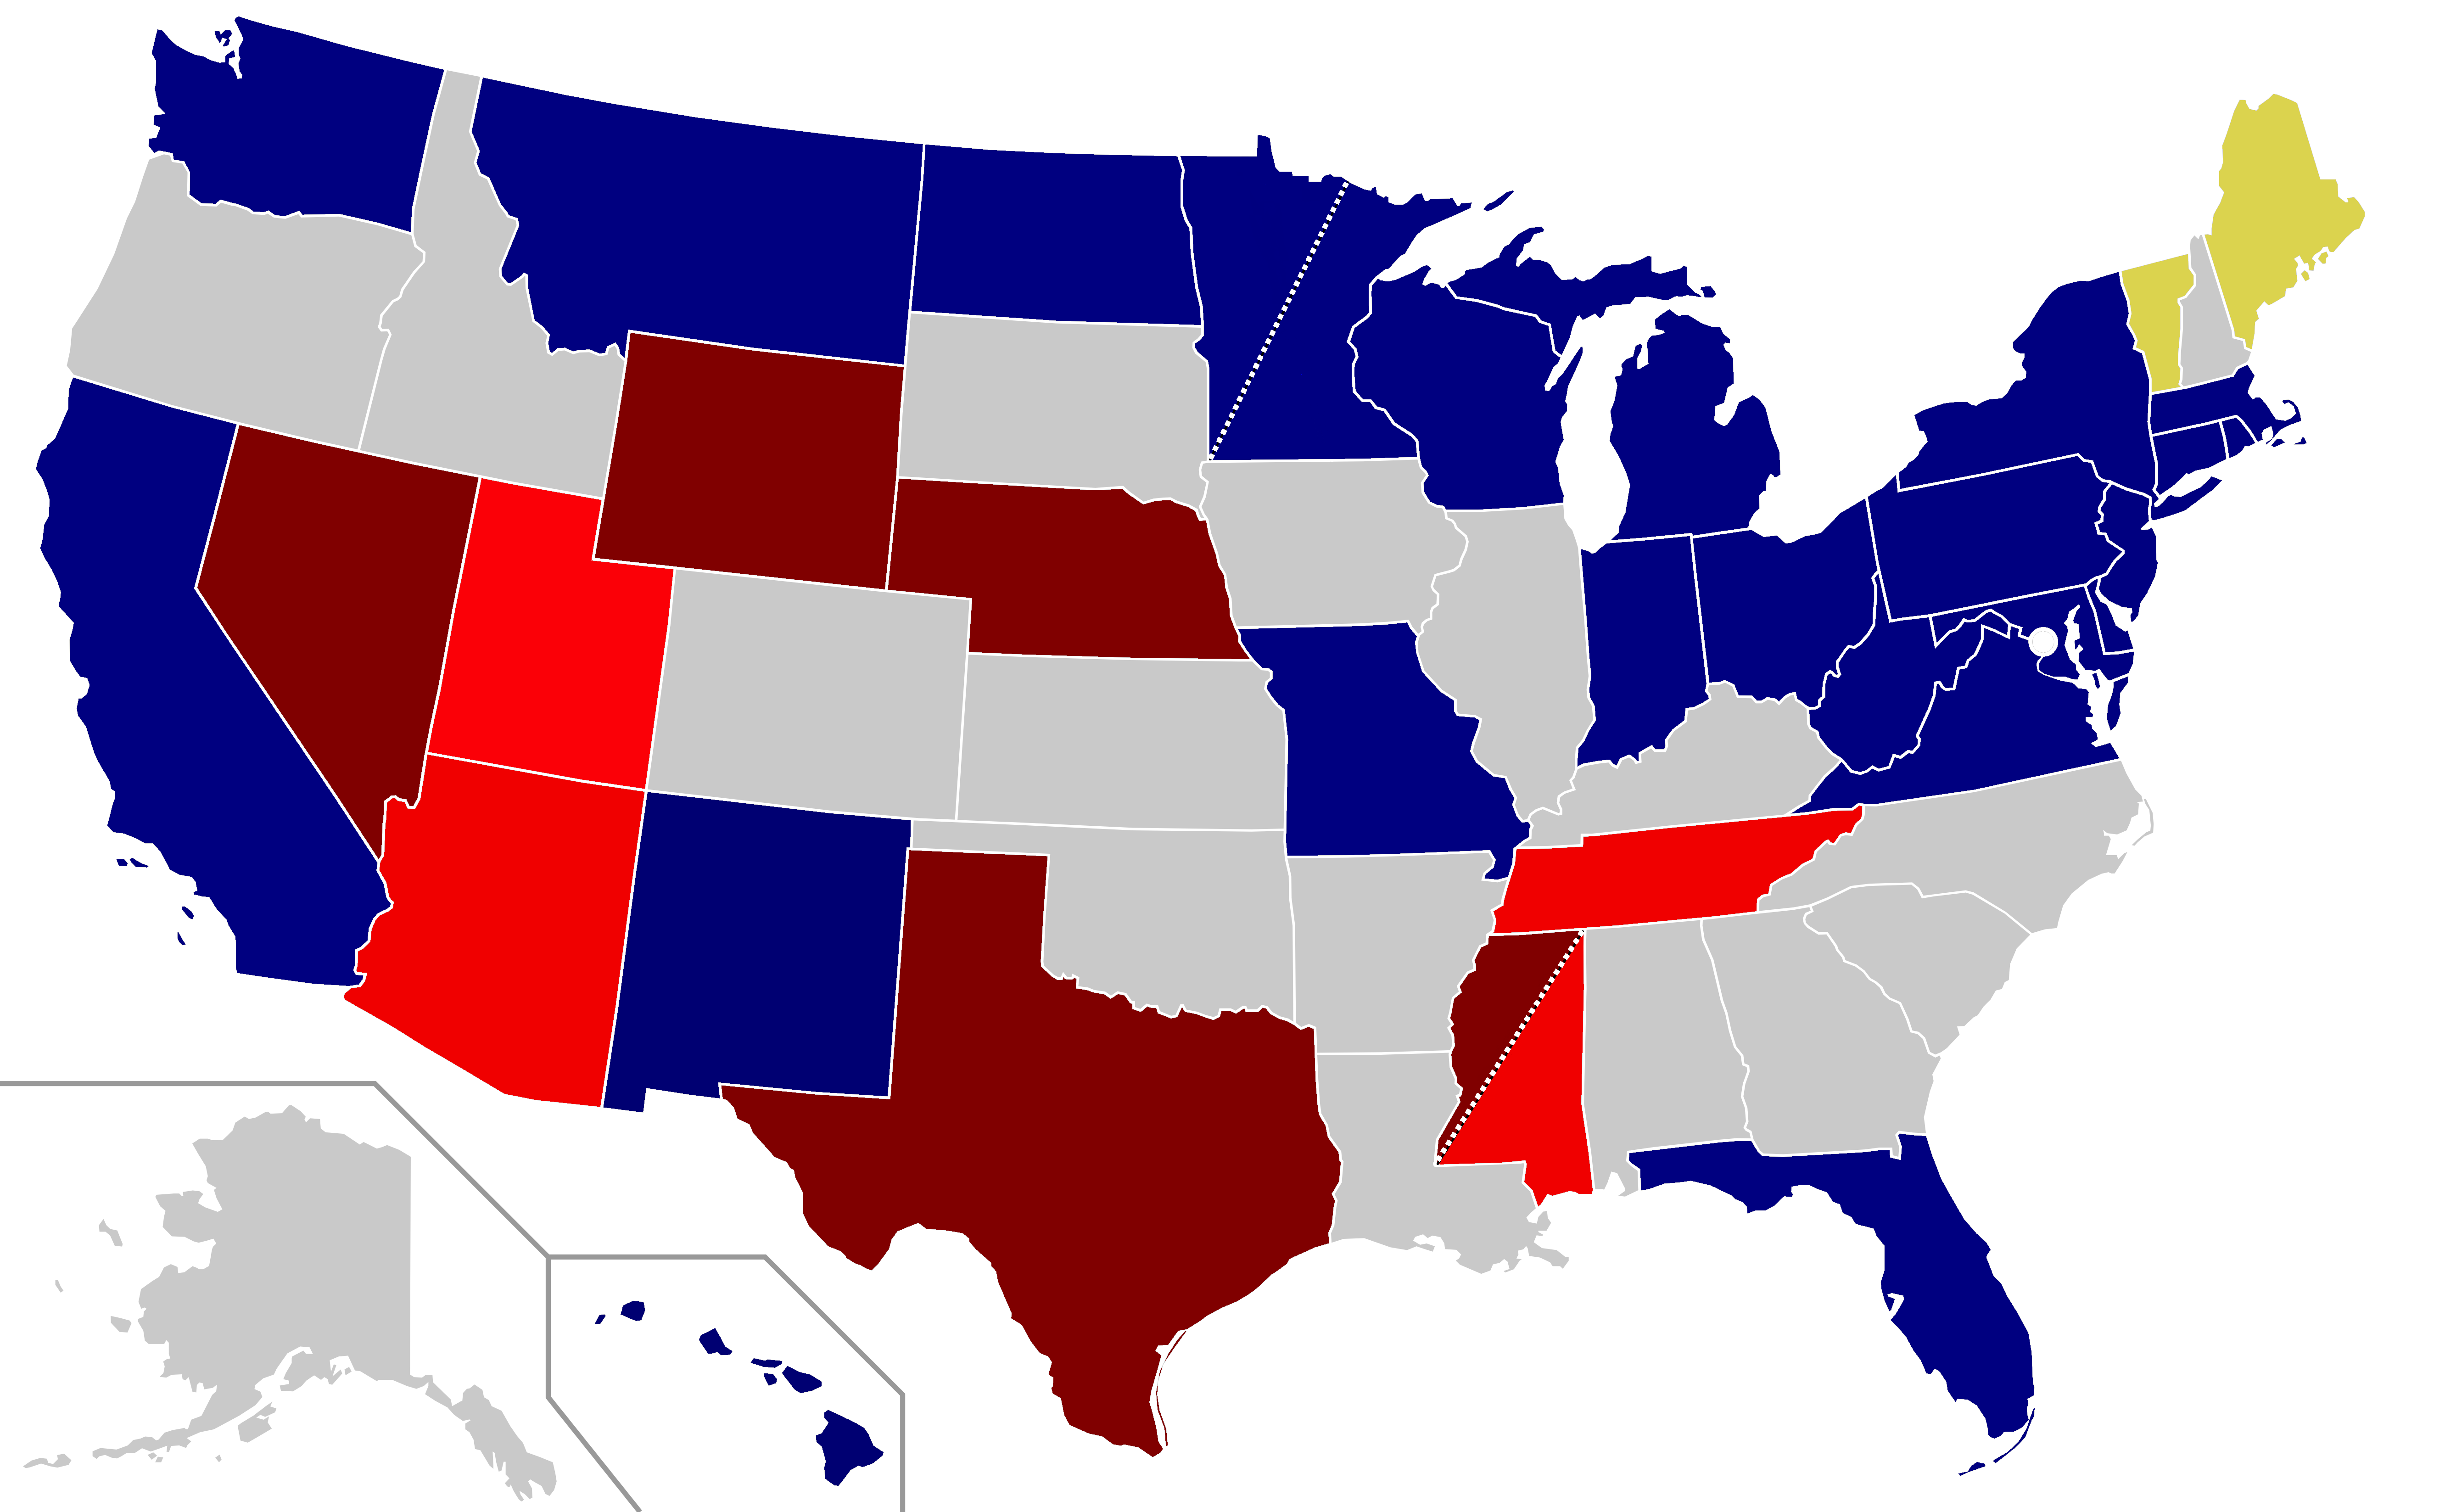 Us Red Blue Map 2018.File Us Senate Election 2018 As Of 2018 03 06 Png Wikimedia Commons